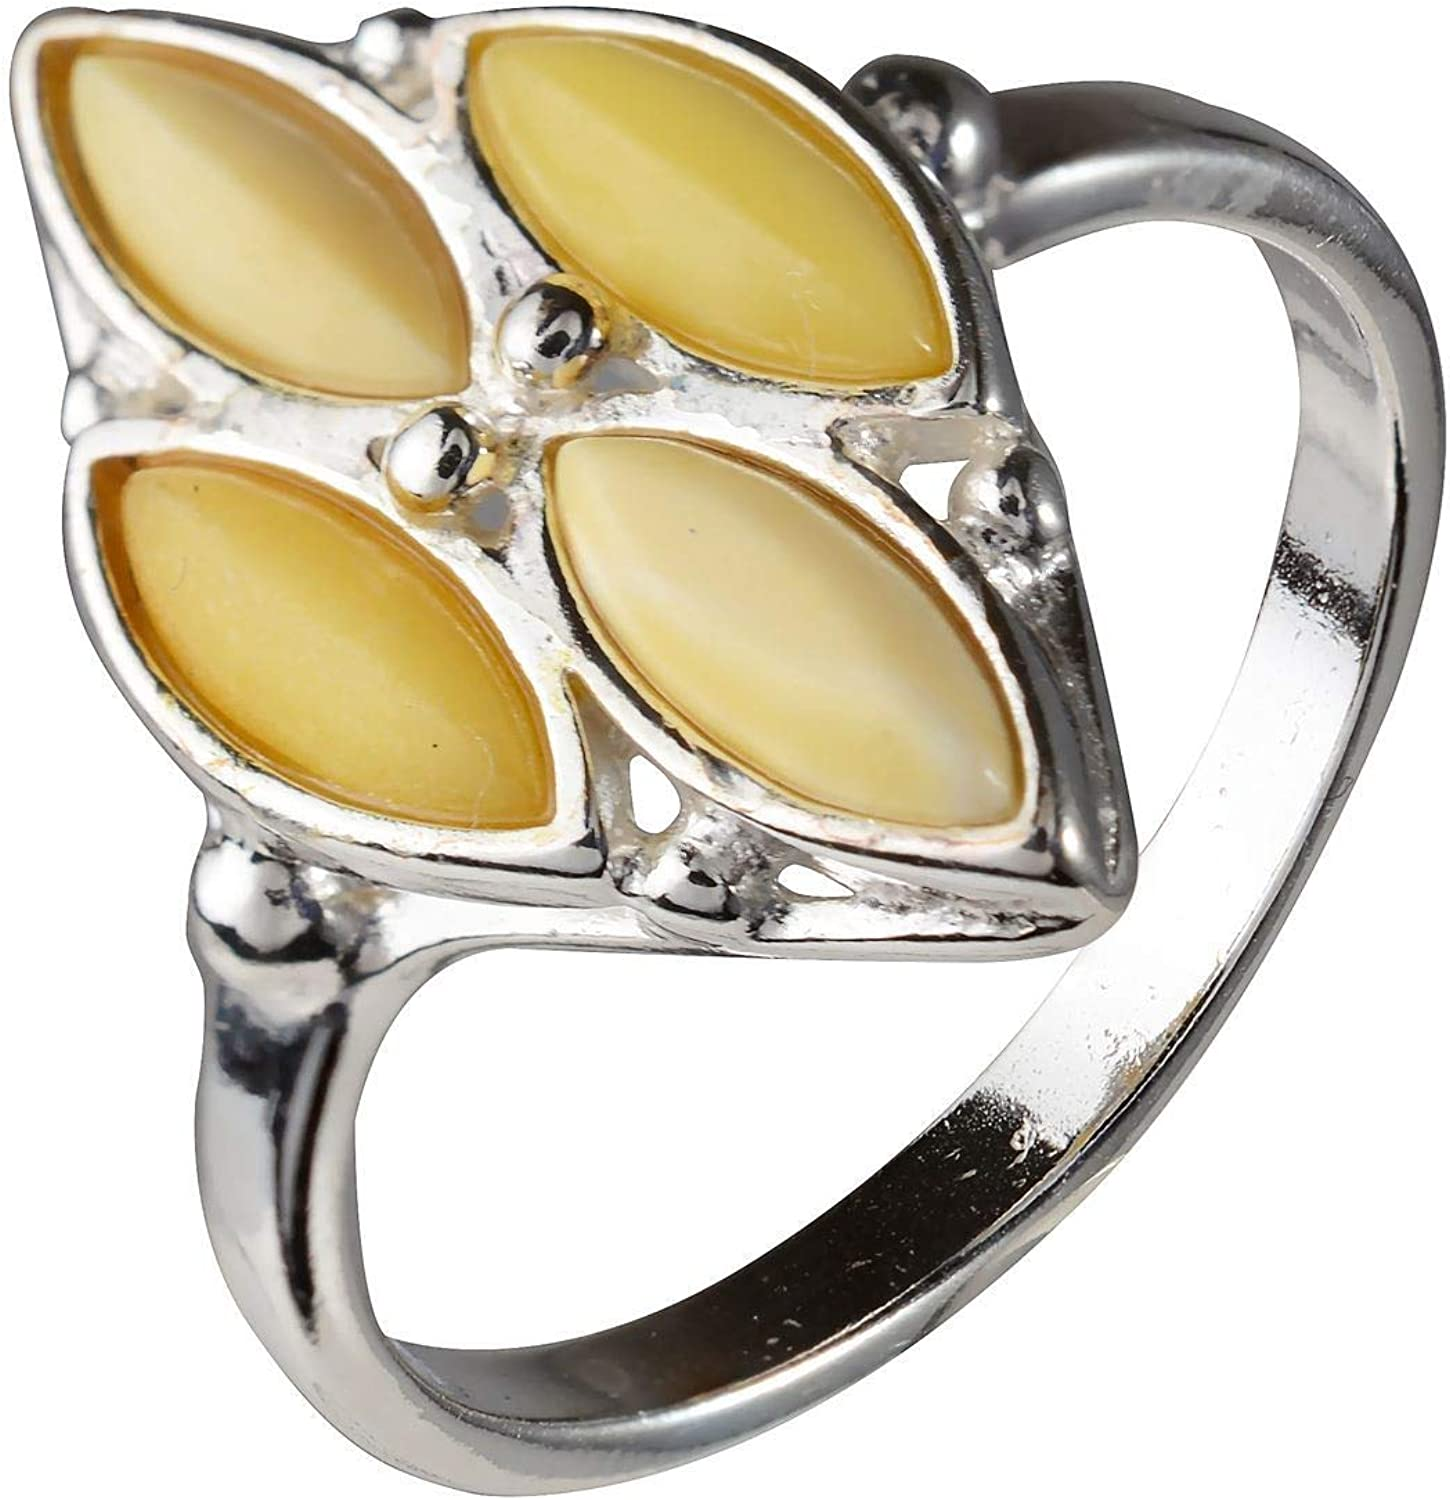 Amber Yellow Ring  Amber Statement Ring Amber Honey Ring Ring for WomenButterscotch Ring Natural Amber Ring